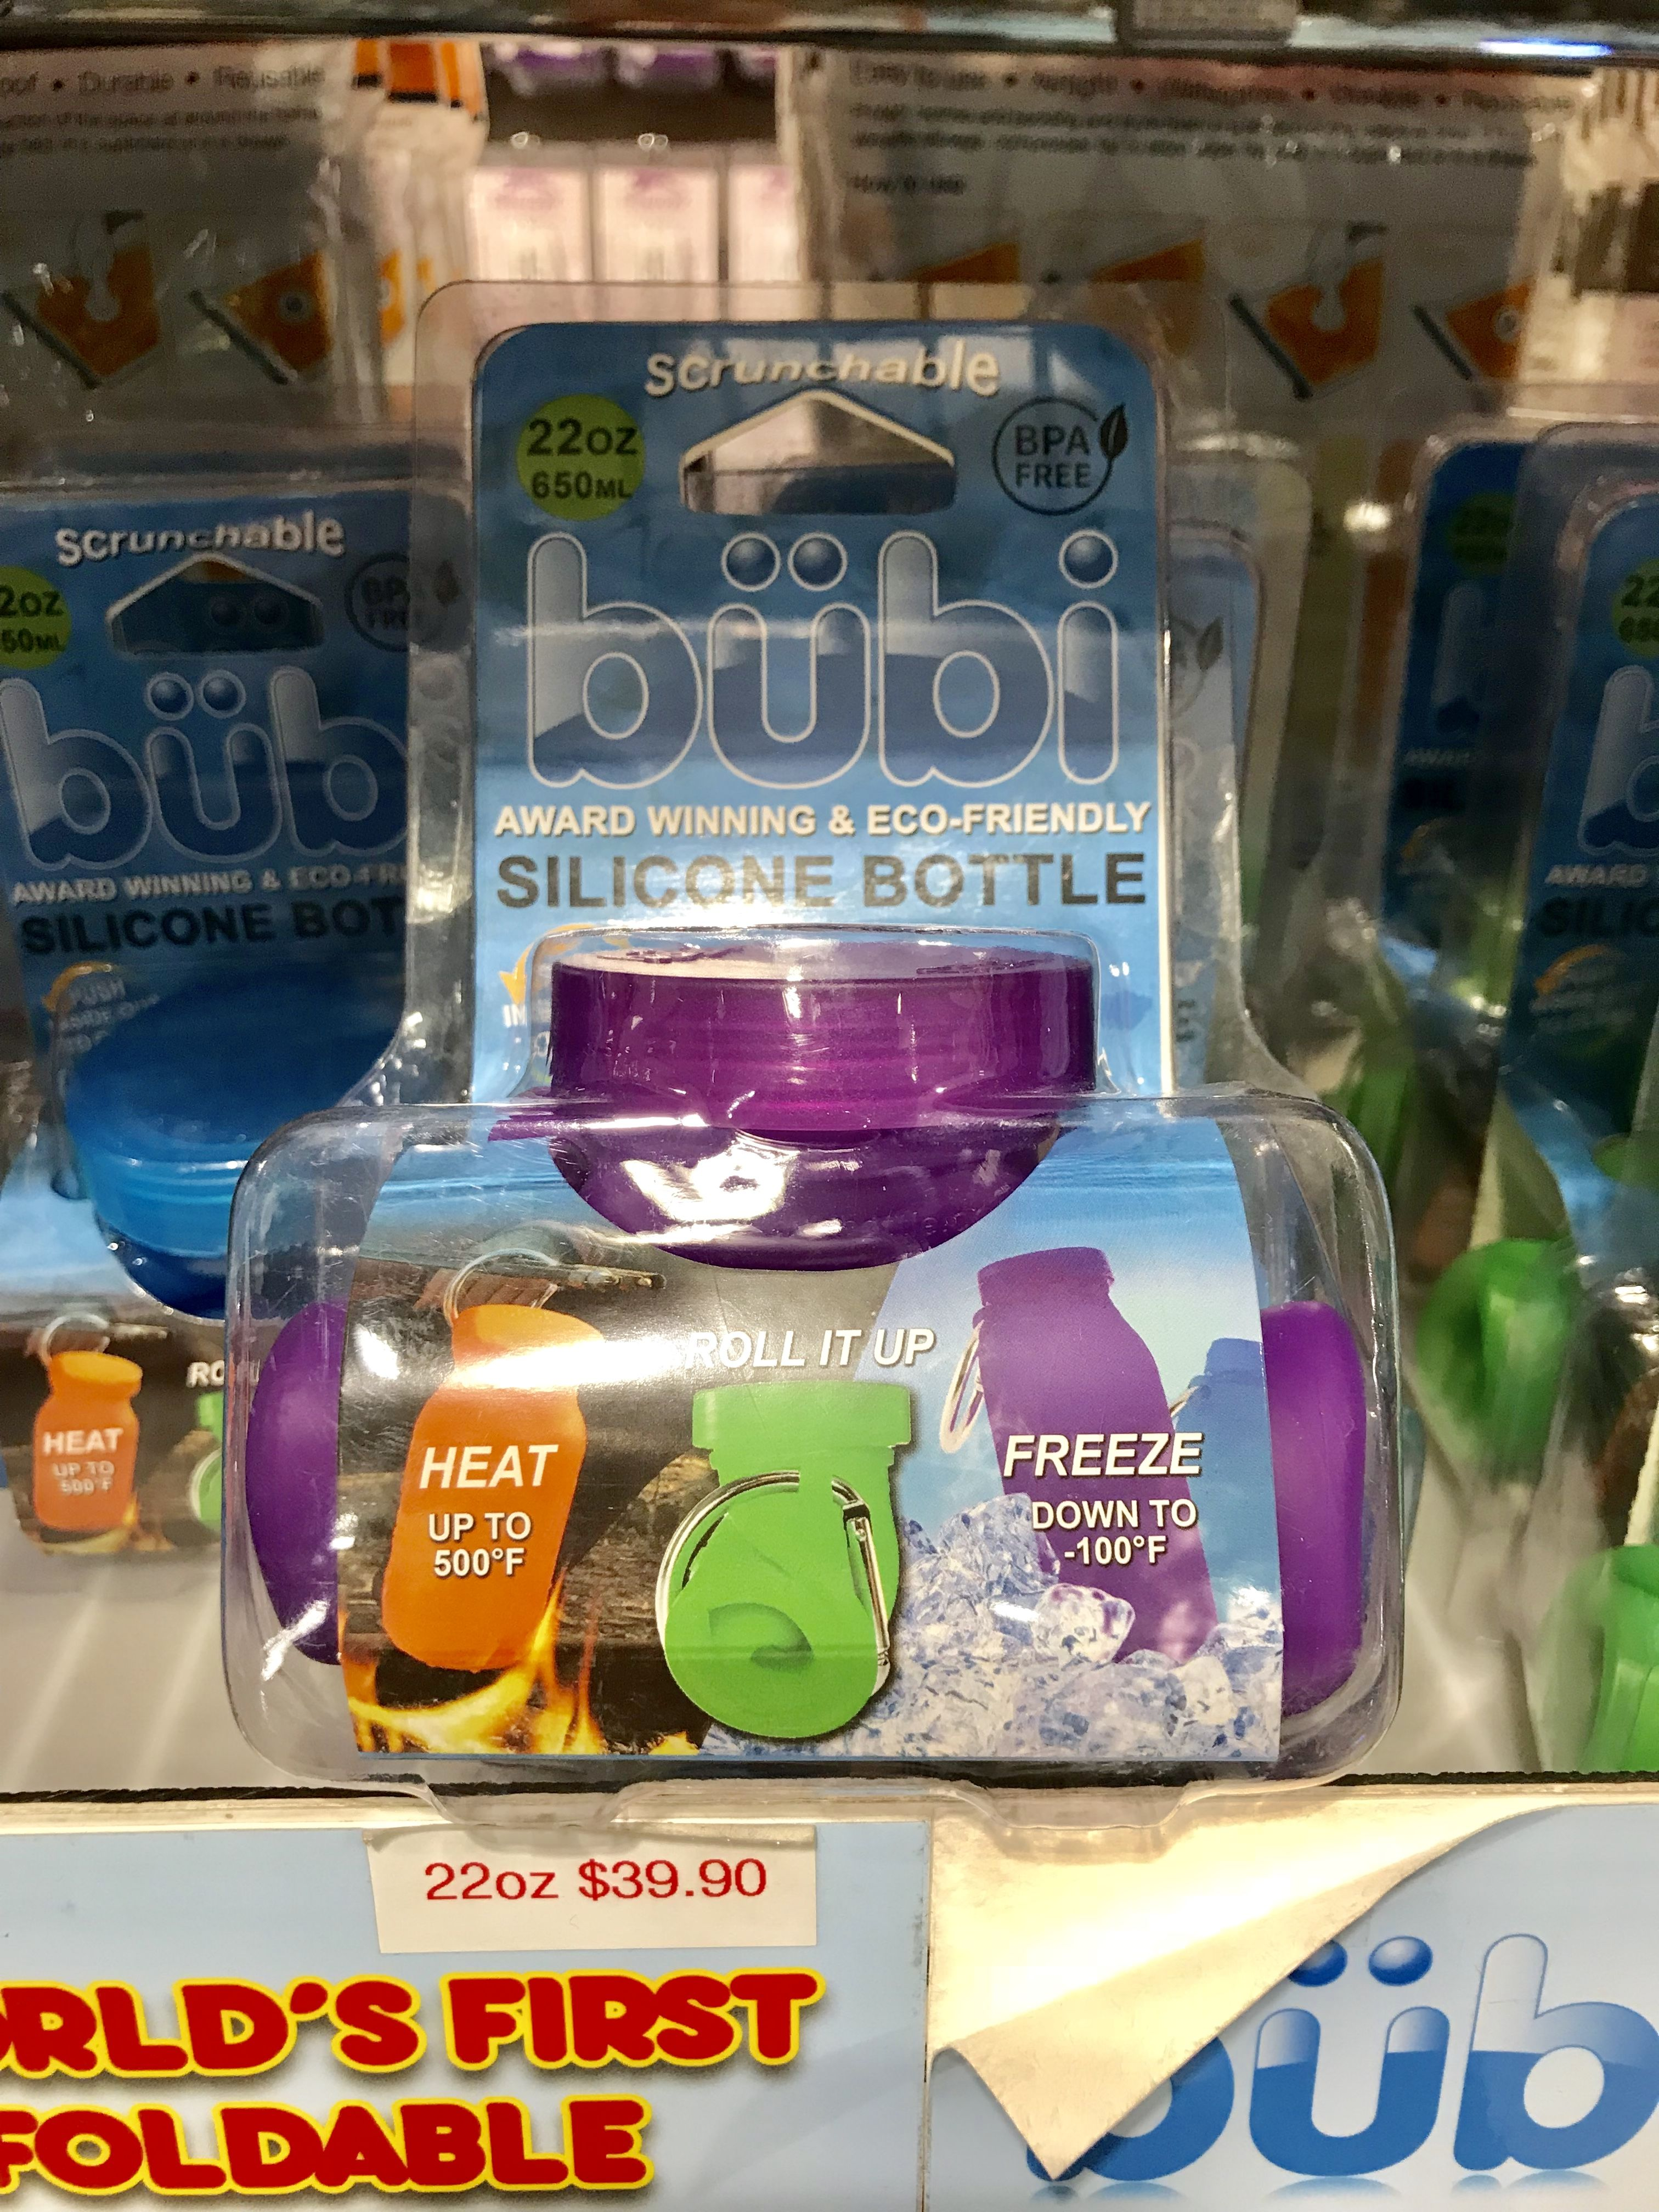 Pin By A Deecoded Life On Panoply Of Purple Silicone Bottle Bottle My Favorite Color